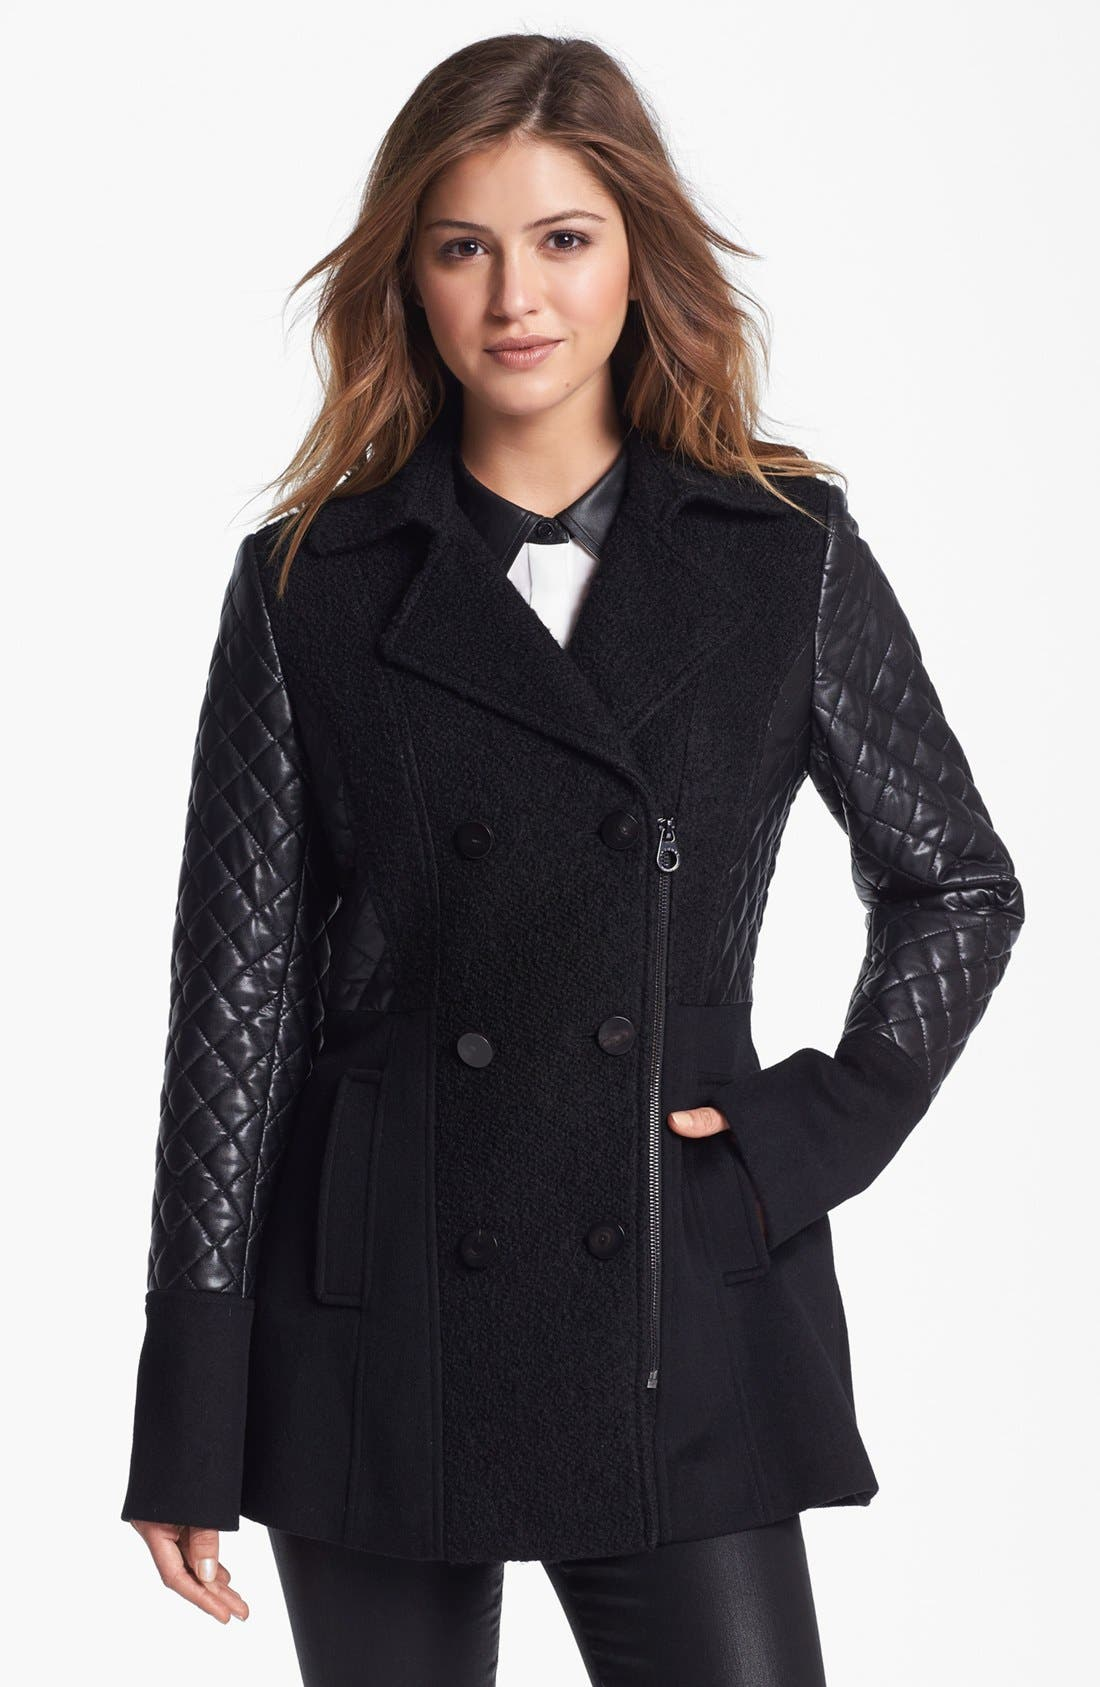 Main Image - Laundry by Shelli Segal Quilted Sleeve Mixed Media Peacoat